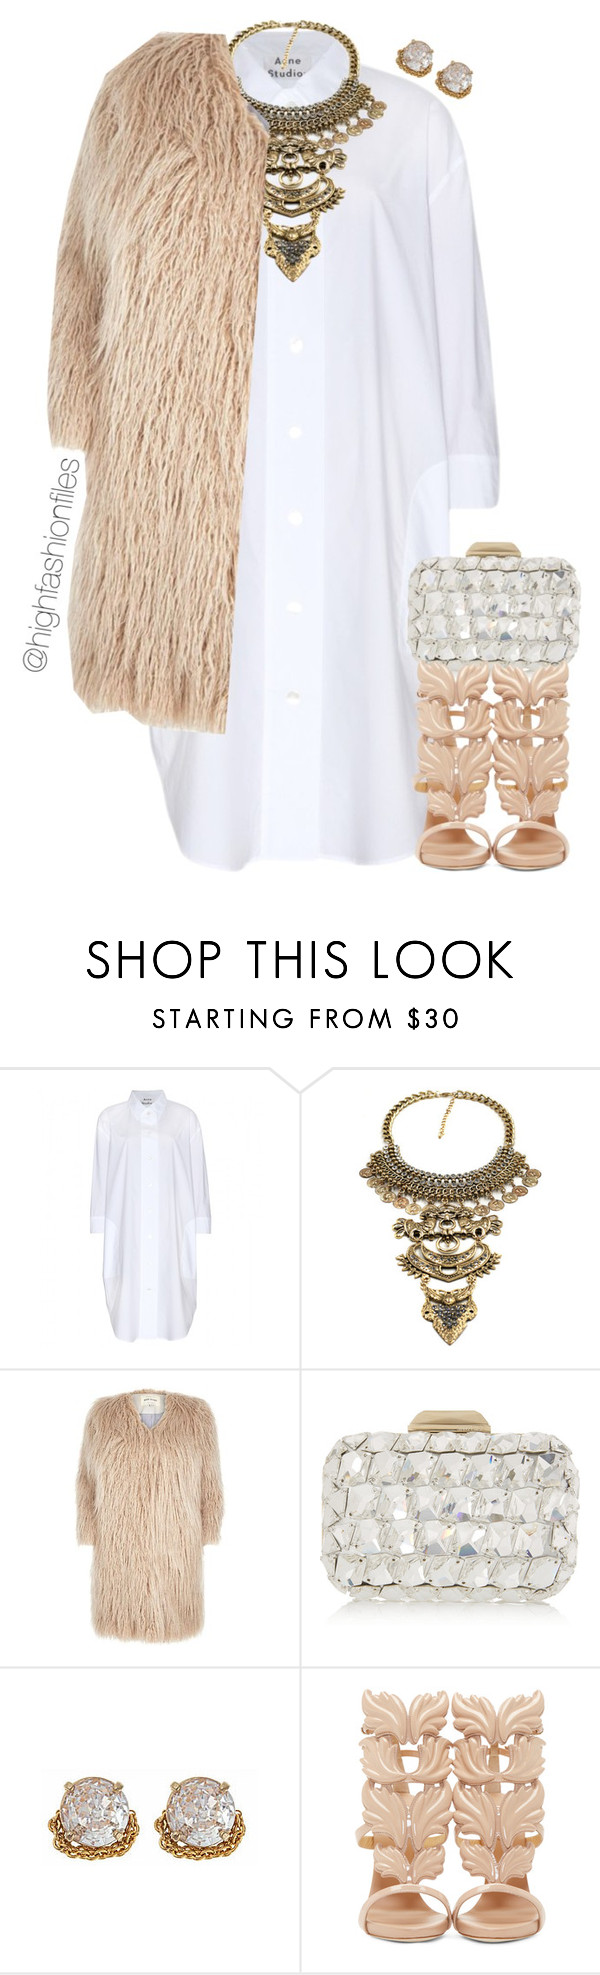 Mid Season. by highfashionfiles on Polyvore featuring Acne Studios, River Island, Giuseppe Zanotti, Jimmy Choo and ABS by Allen Schwartz